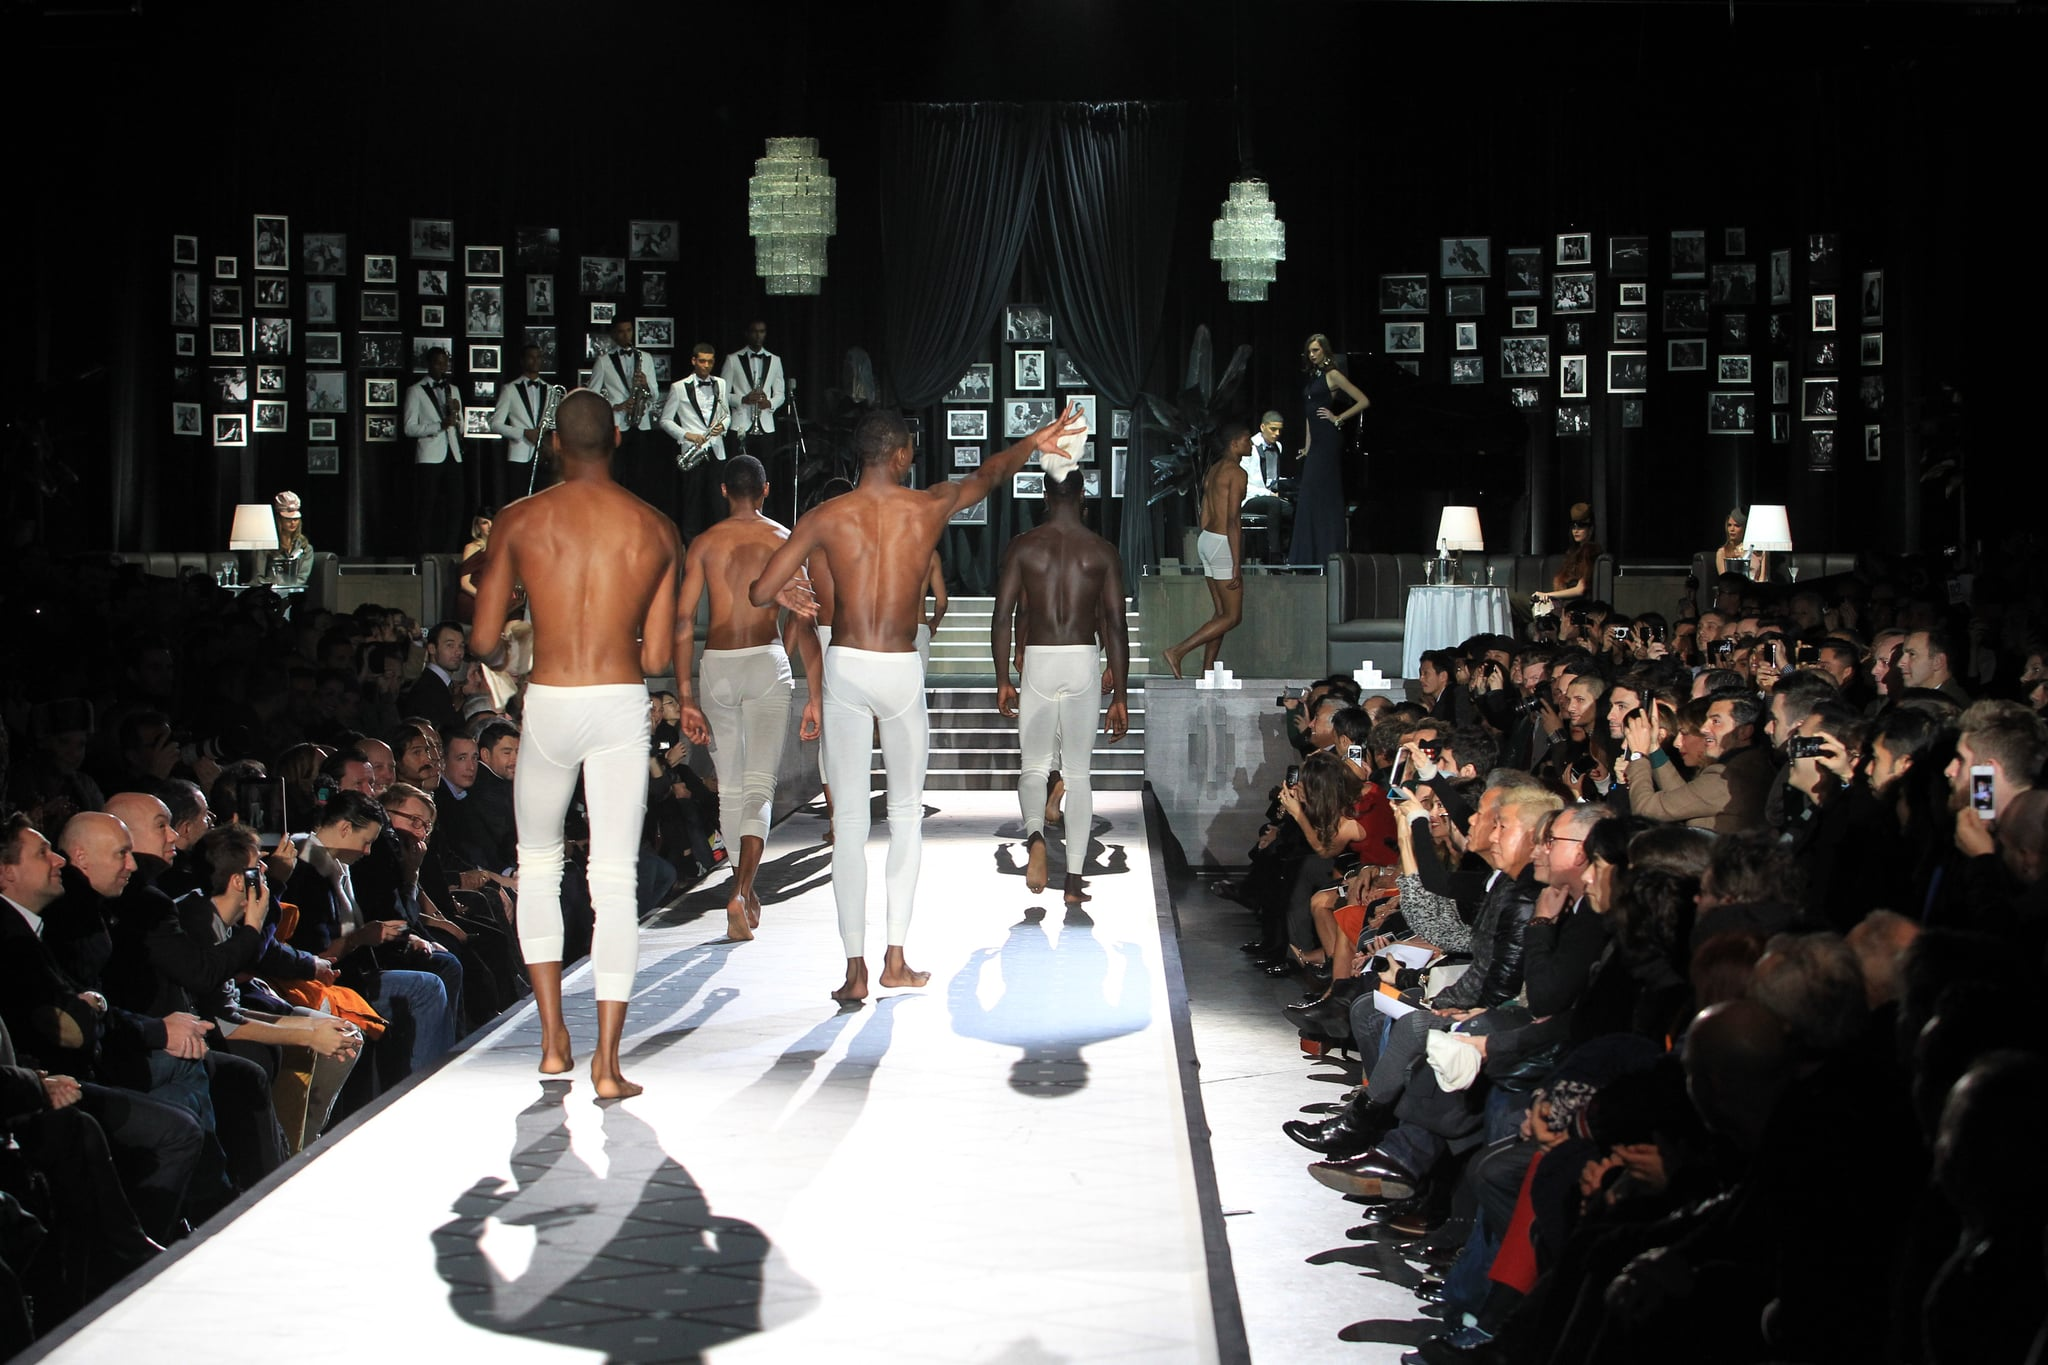 When DSquared2's Models Stripped on the Runway